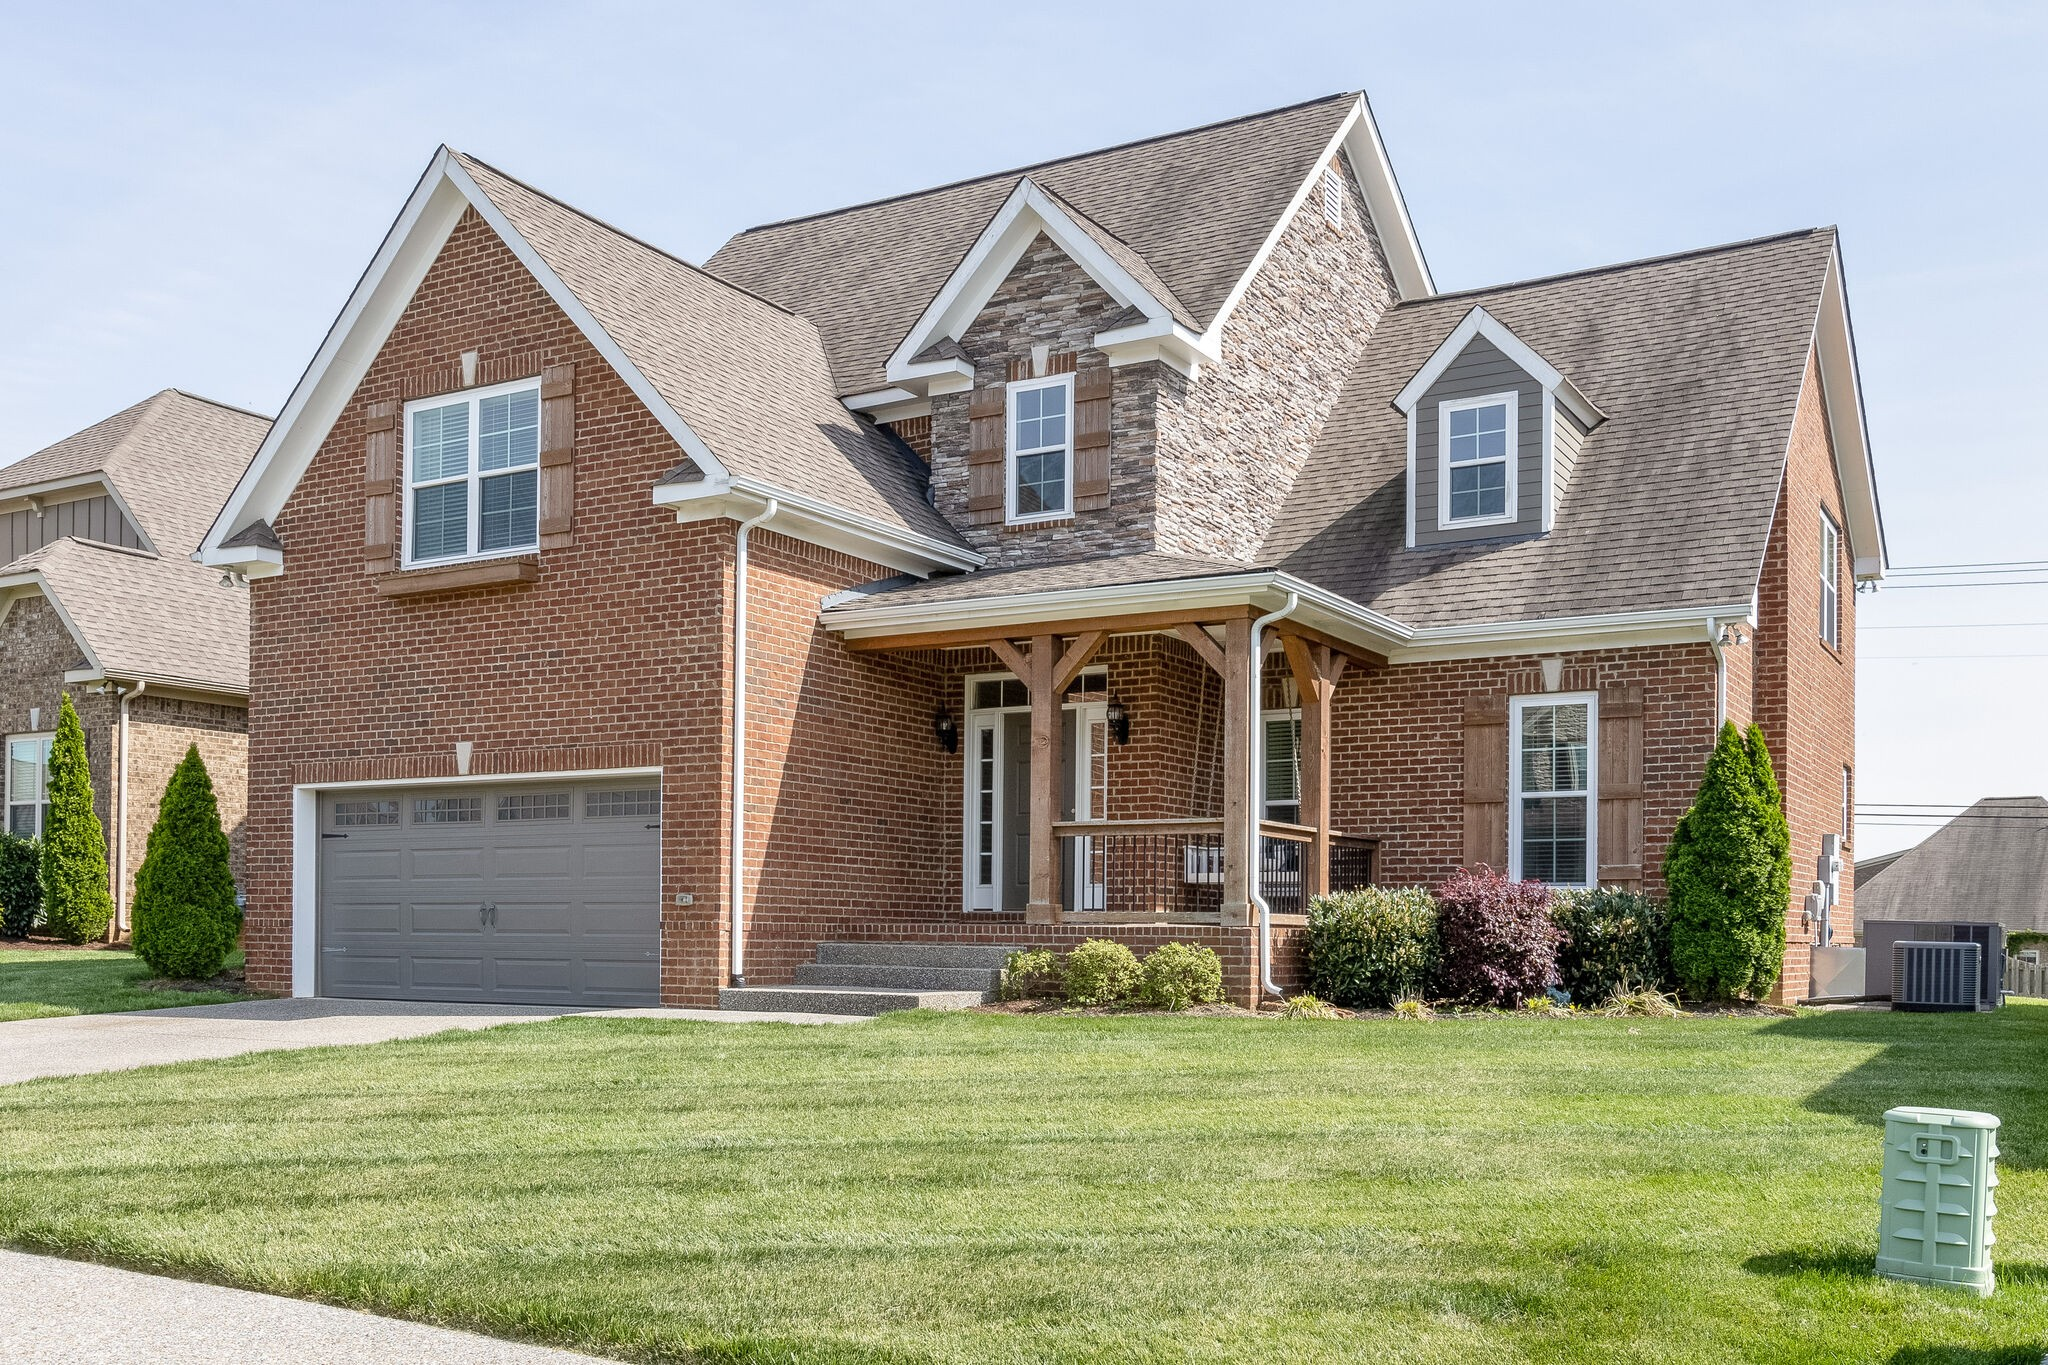 Beautiful, all brick, John Maher, Heathrow floorpan. Close walk to the neighborhood amenities and middle/high schools. Meticulously maintained yard, open floor plan, 2 story rock fireplace, could be 4 bedrooms/loft or 3 bedrooms w/ 2 bonus rooms, primary bedroom on main level. Multiple Offers please submit by 9pm 5/2.